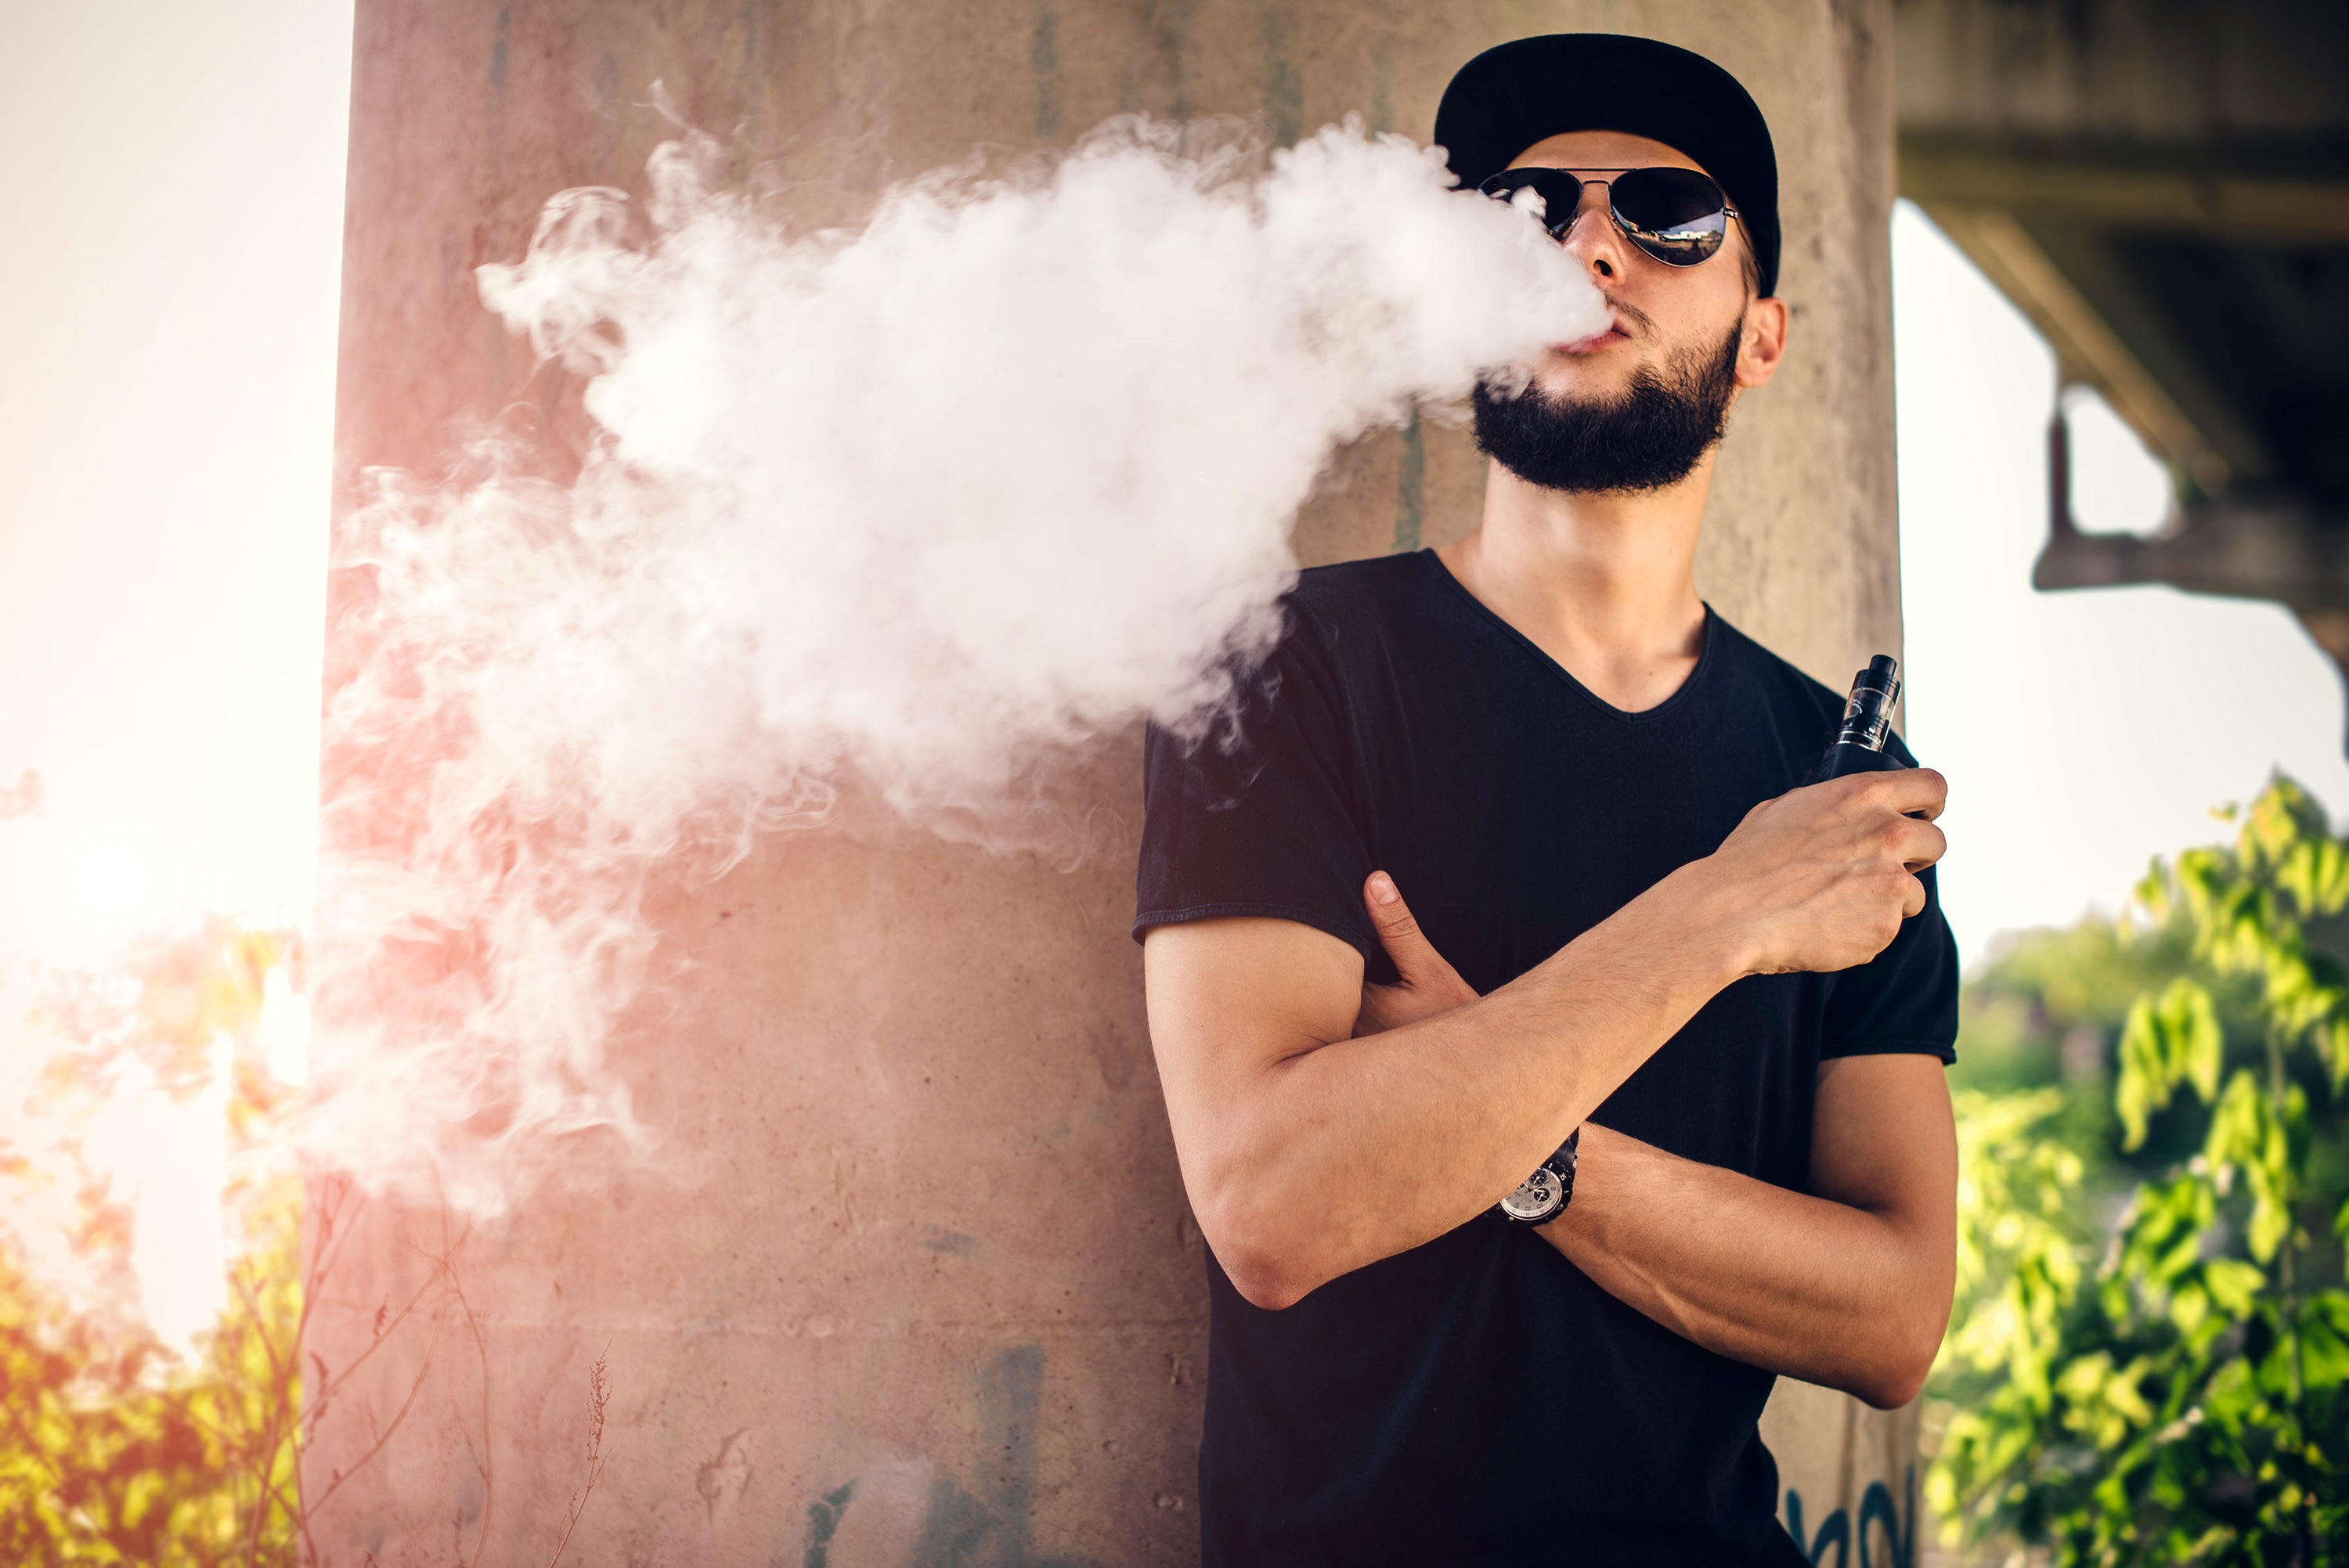 A young man with a beard and sunglasses blowing vape smoke out of his mouth while outside.